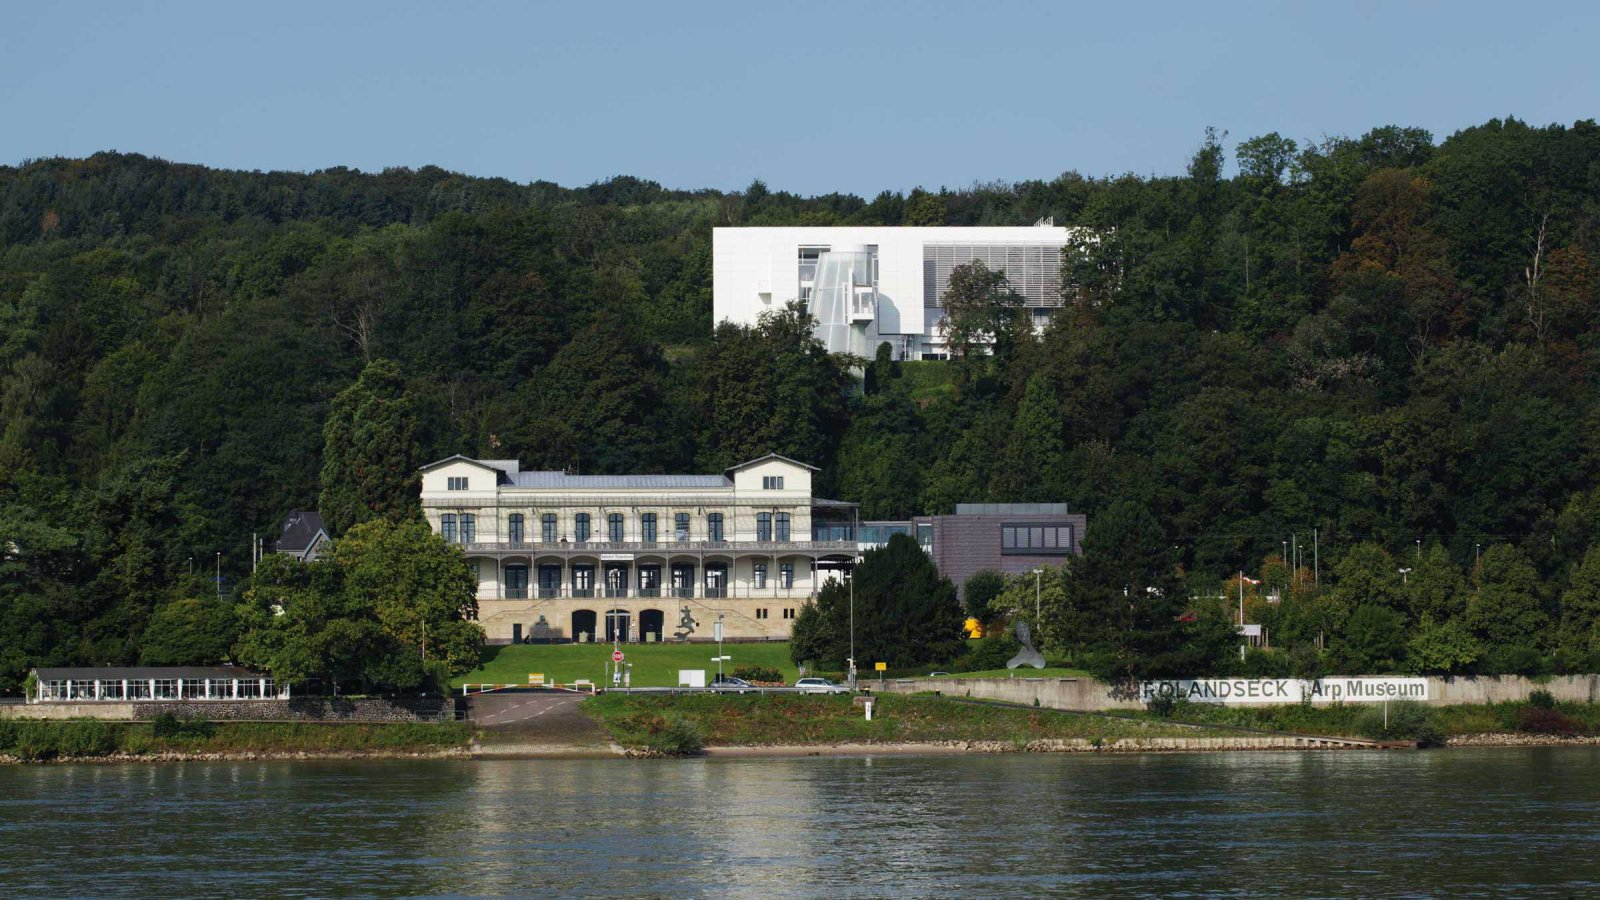 View of the Arp Museum from the ferry© Arp Museum Bahnhof Rolandseck, photo: Ulrich Pfeuffer GDKE